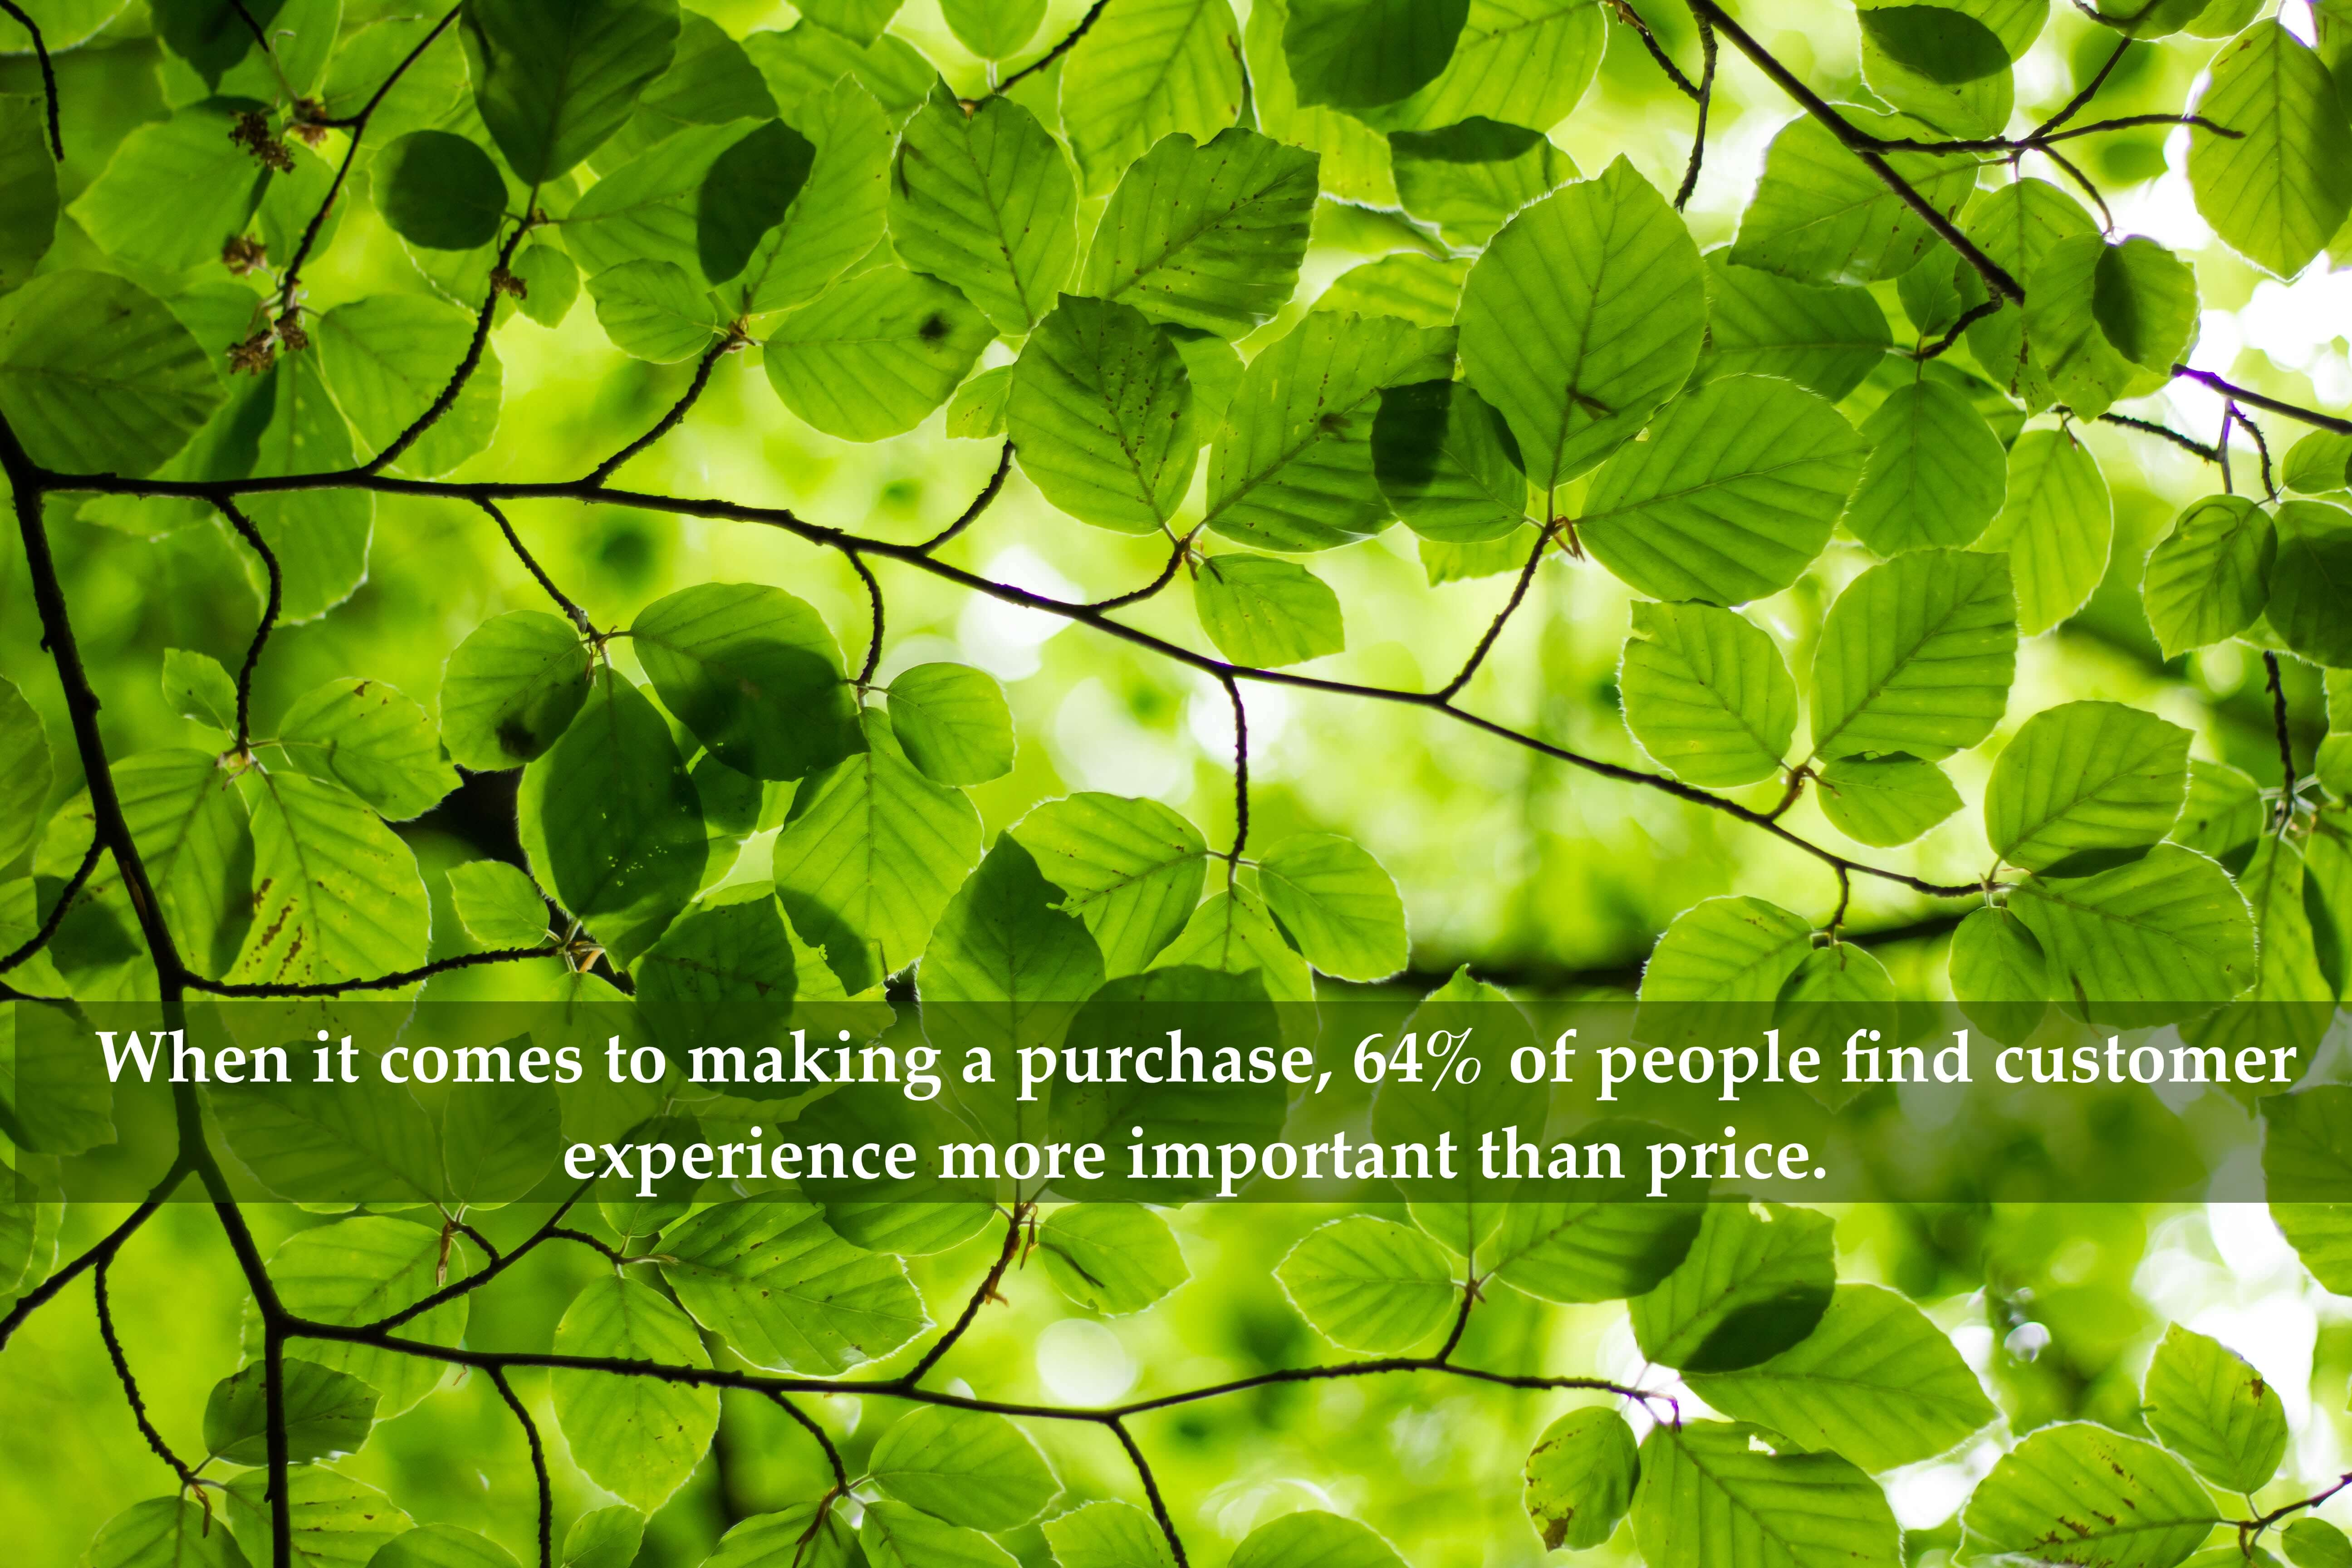 When it comes to making a purchase, 64% of people find customer experience more important than price.